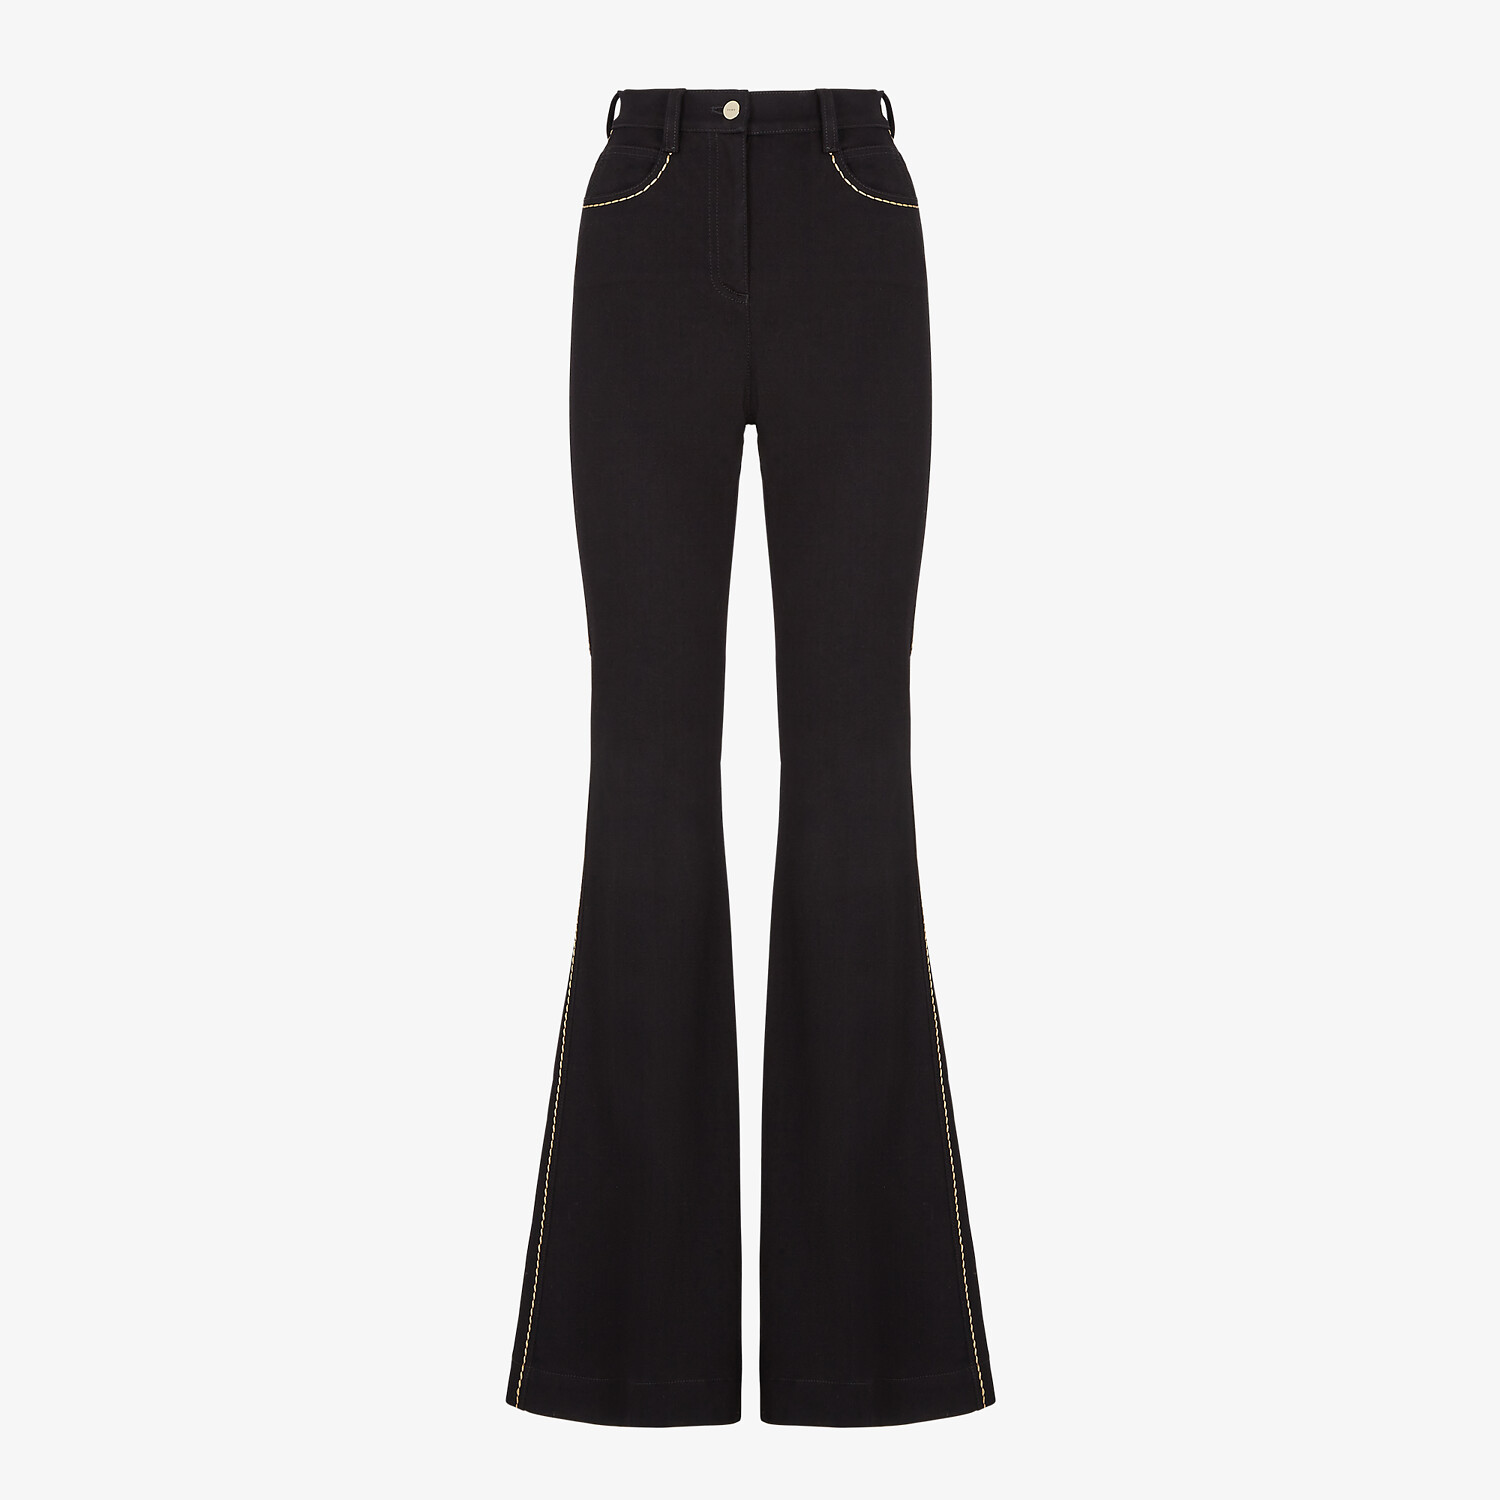 FENDI PANTS - Black denim pants - view 1 detail